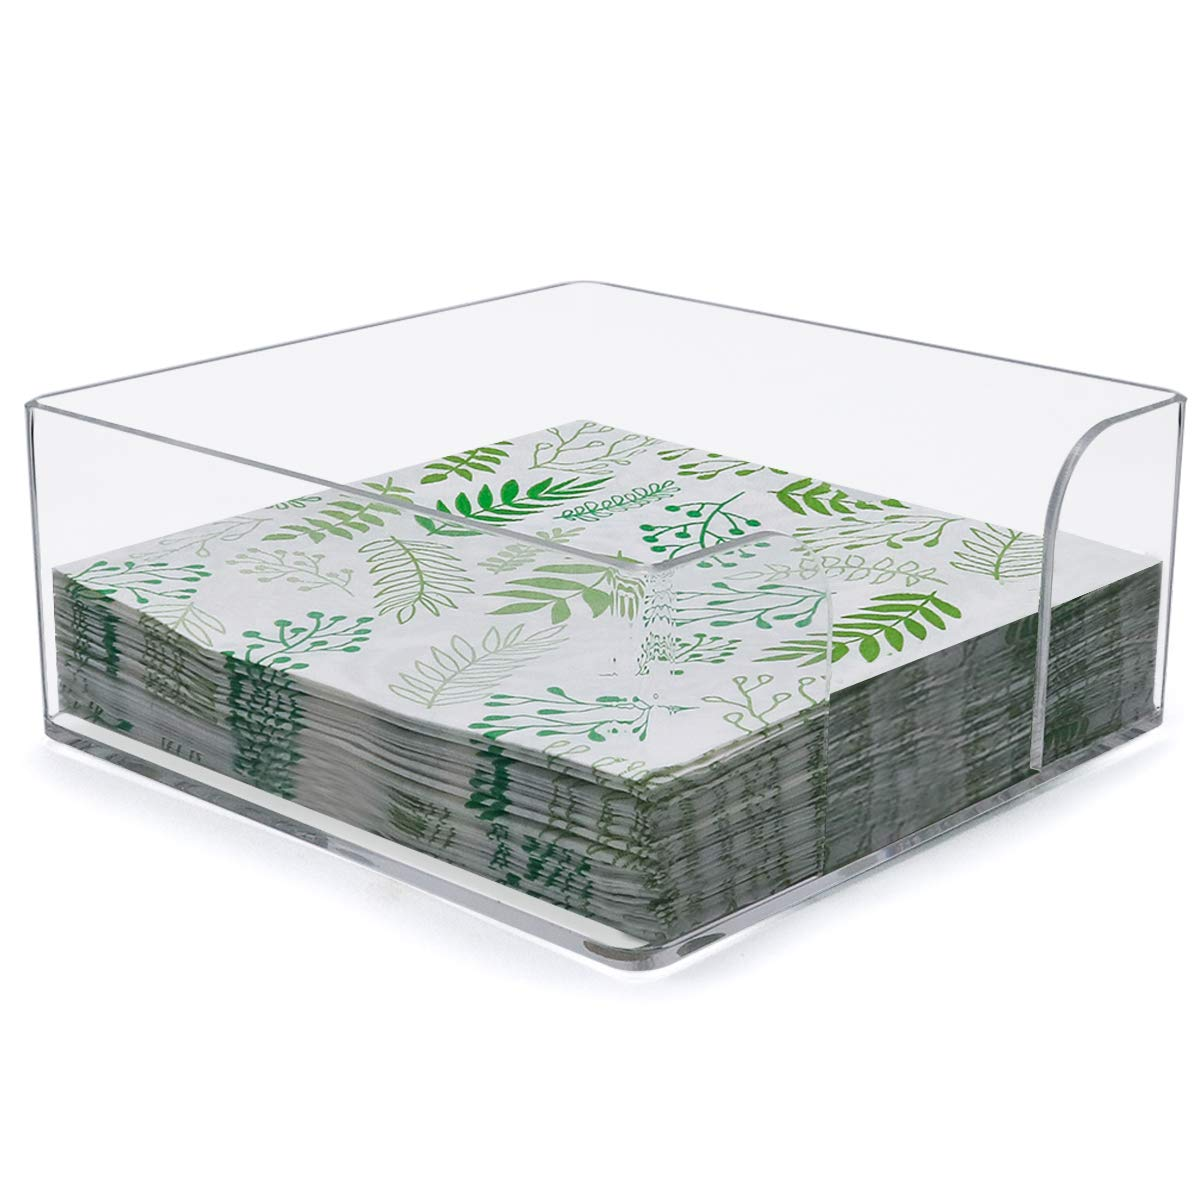 Napkin Holder, Clear Acrylic Cocktail Napkin Holder for Restaurant,Office,Party,Home Table - SupperAcrylic